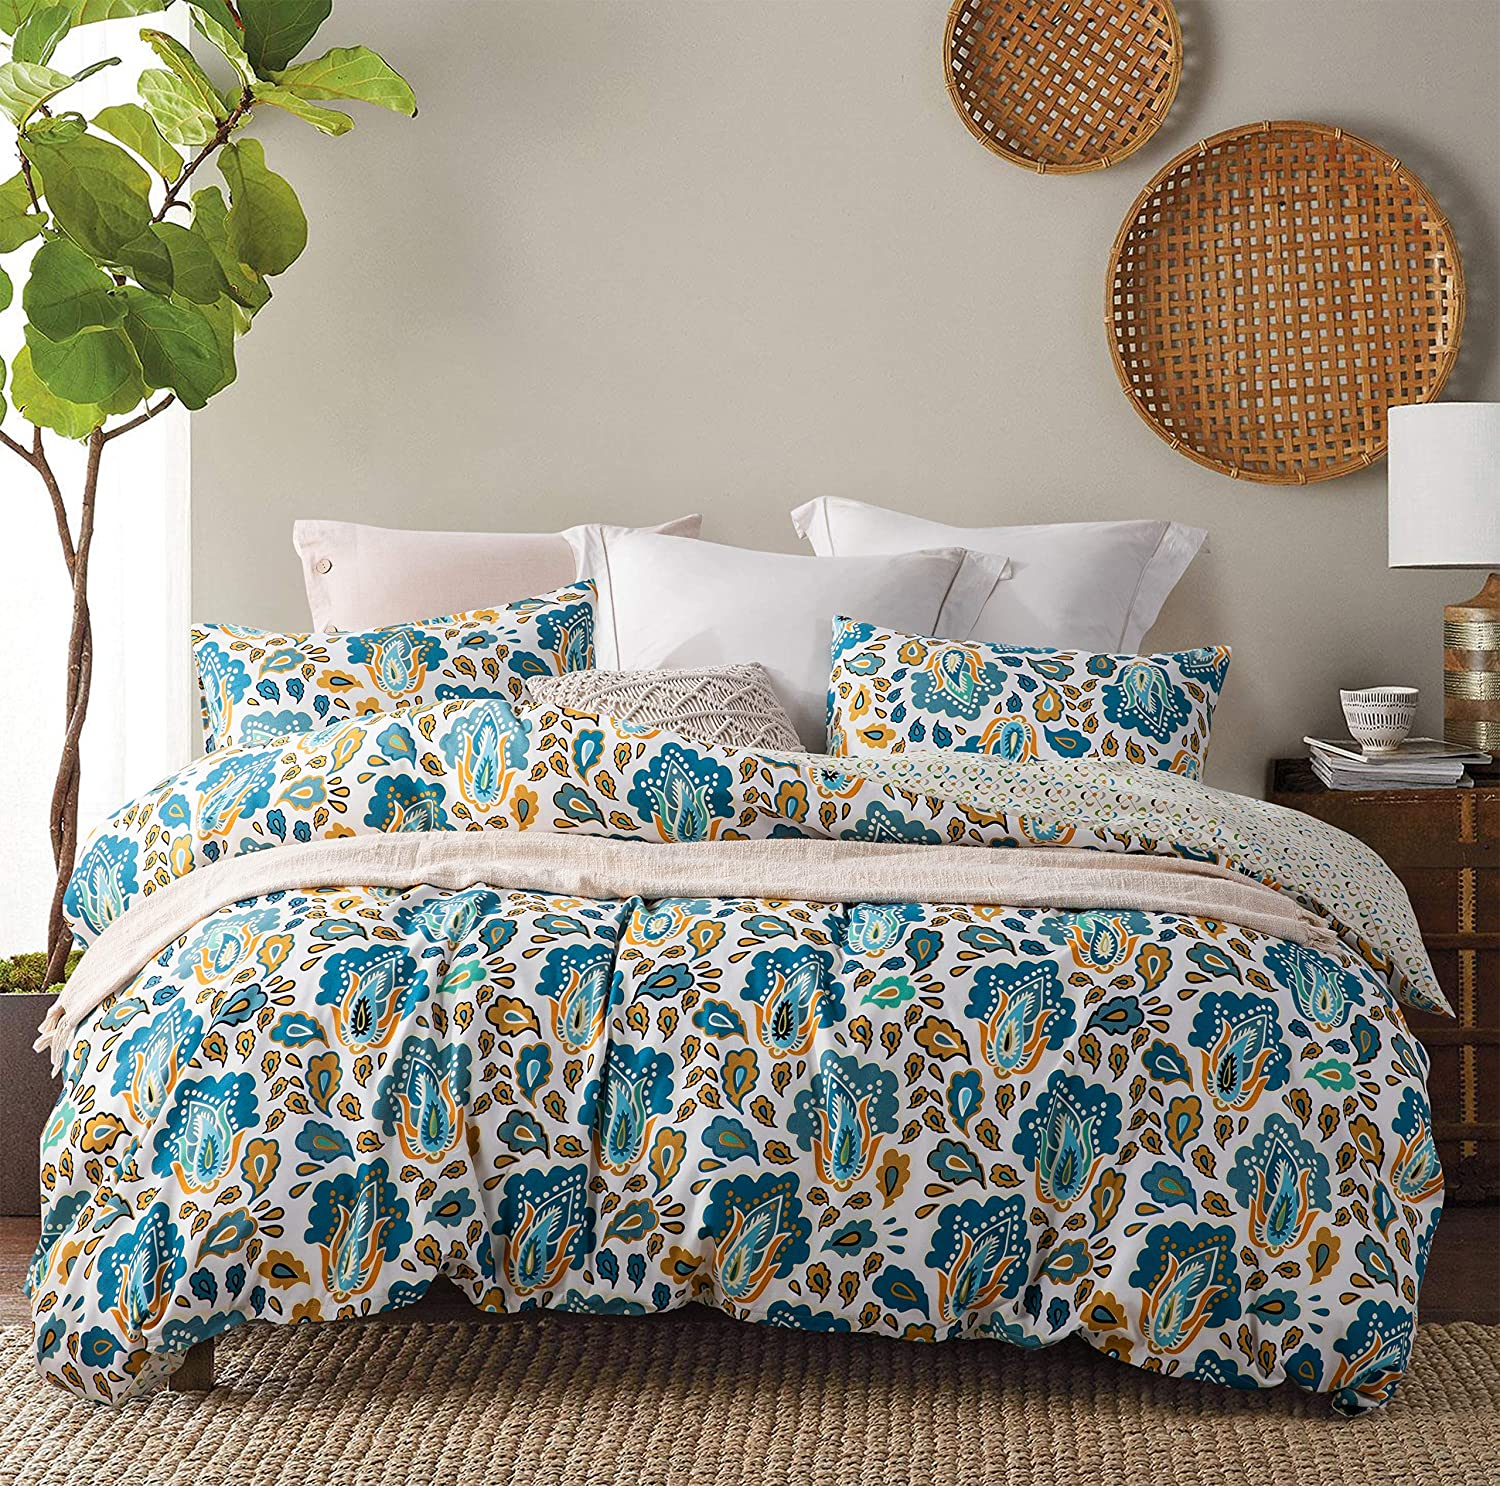 Direct store JOHNPEY Albuquerque Mall King Duvet Cover Sets Floral Various Ext